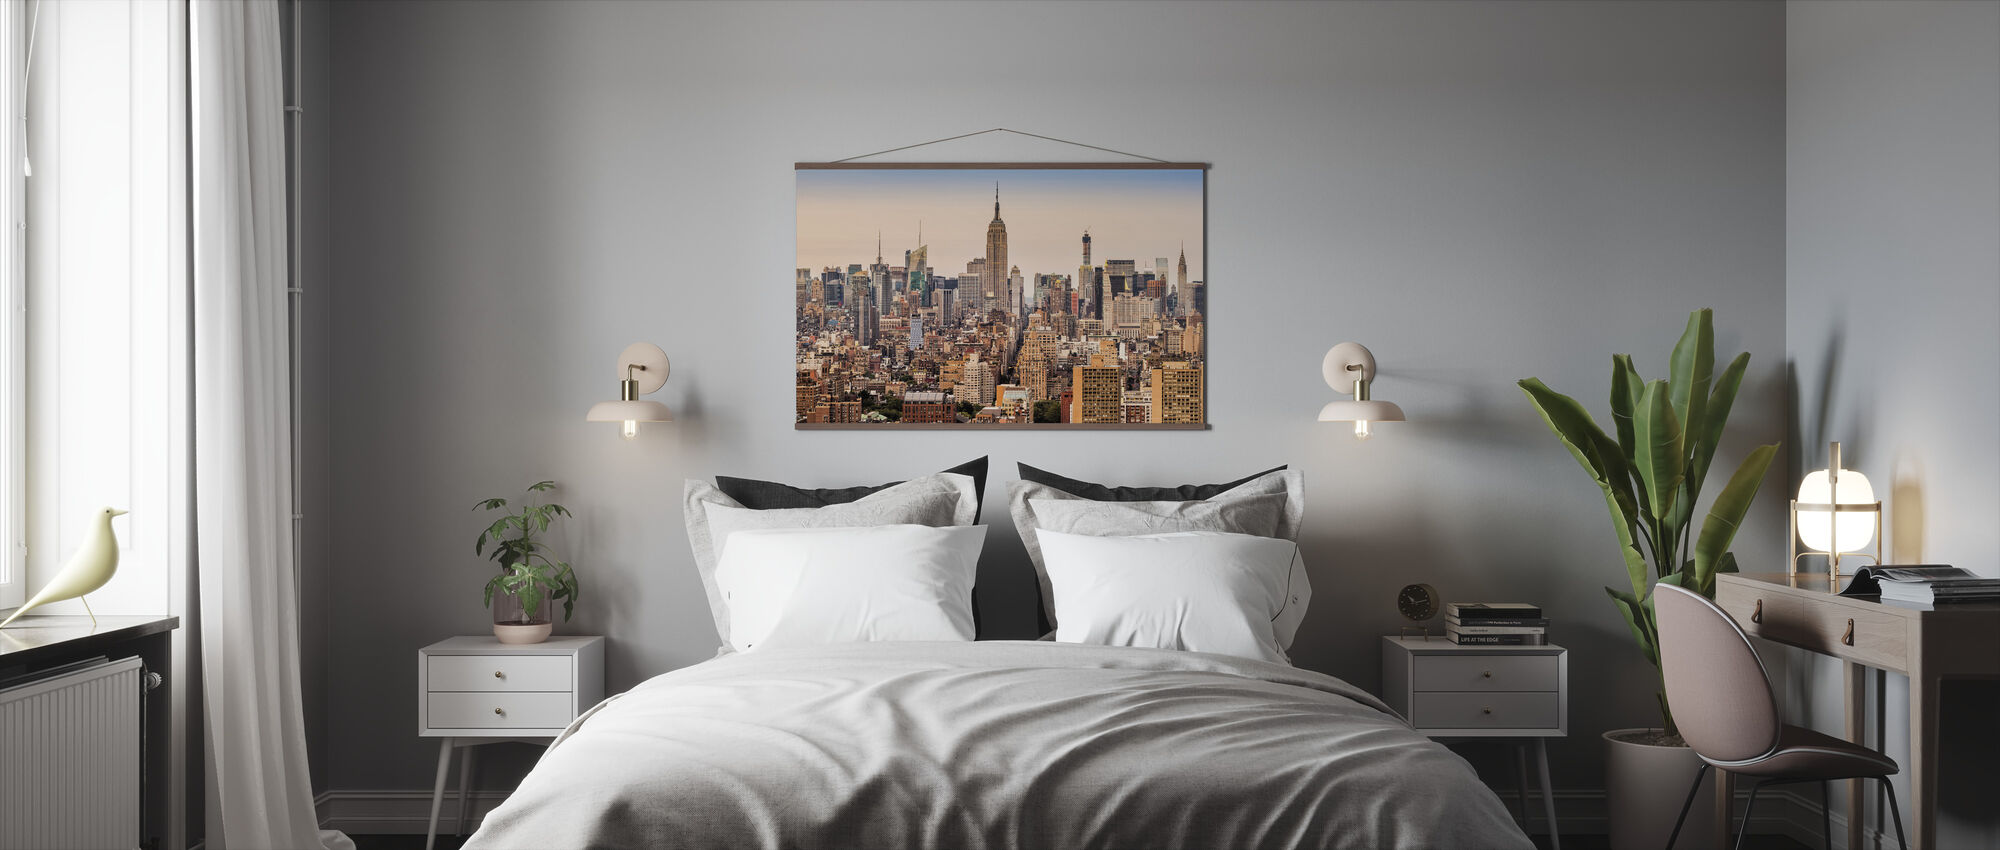 New York Midtown - Poster - Bedroom